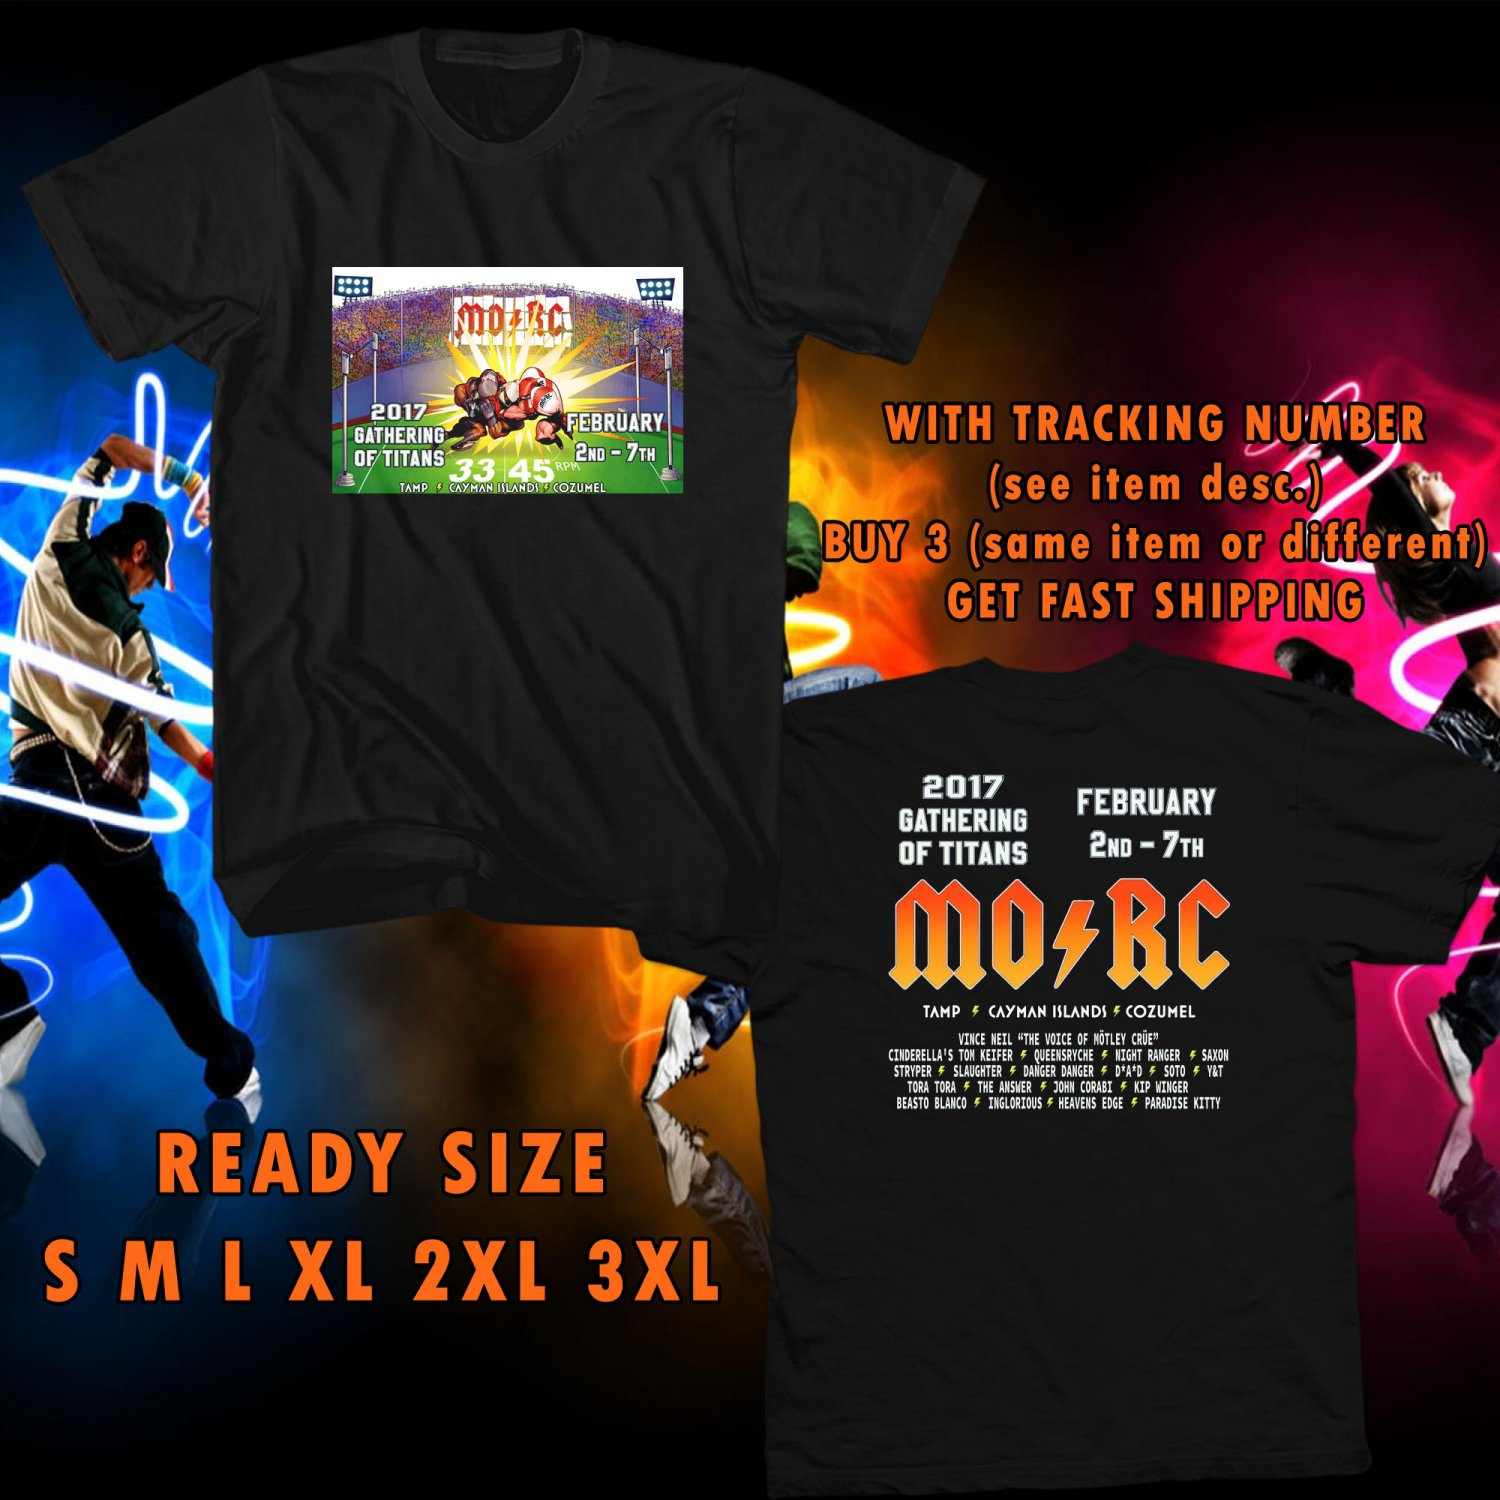 NEW MONSTER OF ROCK CRUISE TOUR 2017 BLACK TEE W DATES DMTR 112